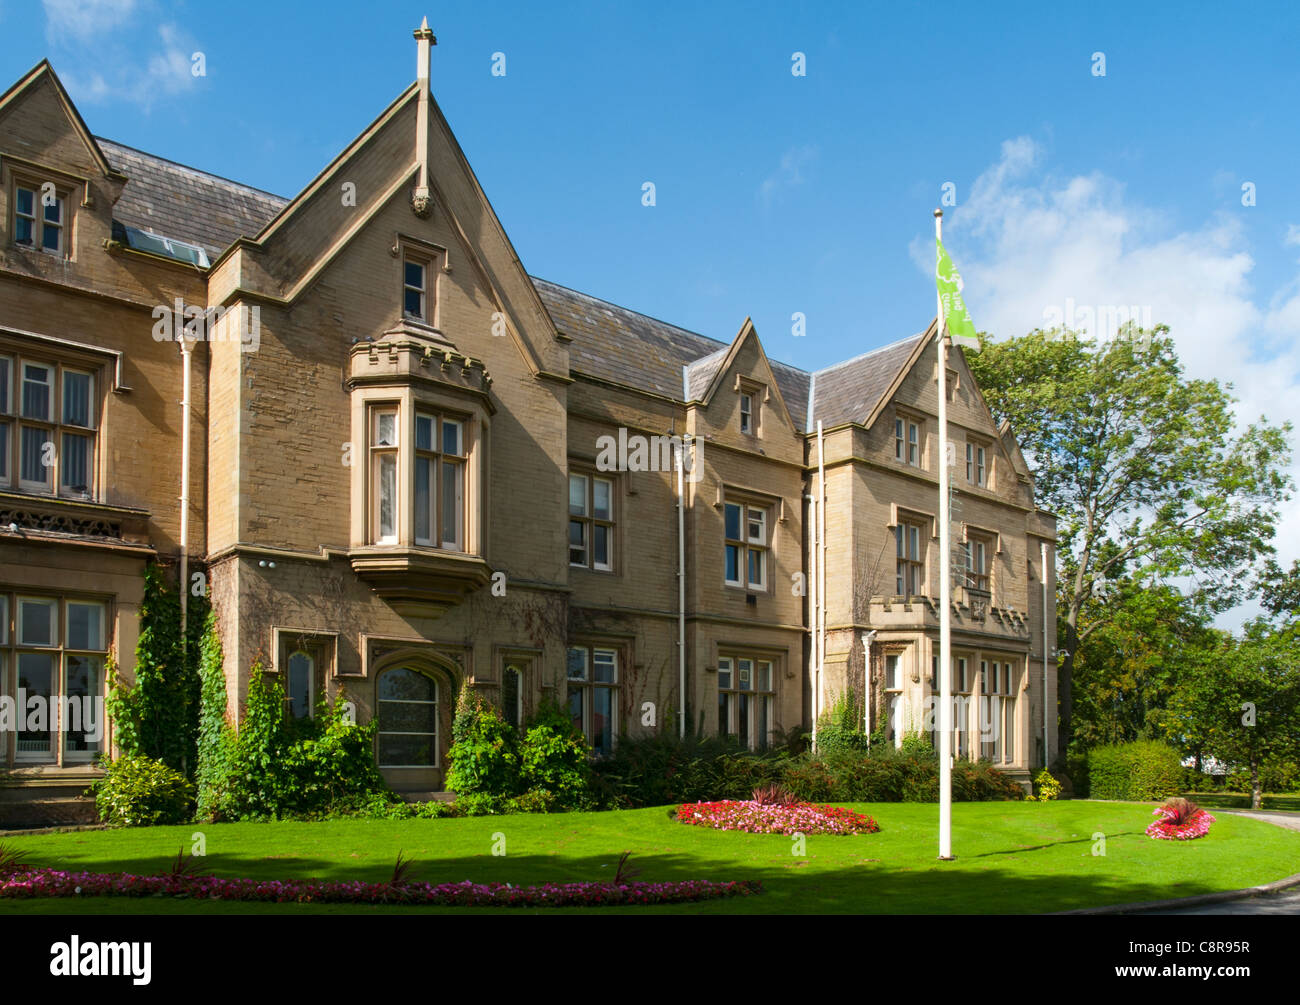 Ryecroft Hall, built 1849.  Grade 2 listed.  Audenshaw, Tameside, Greater Manchester, England, UK Stock Photo